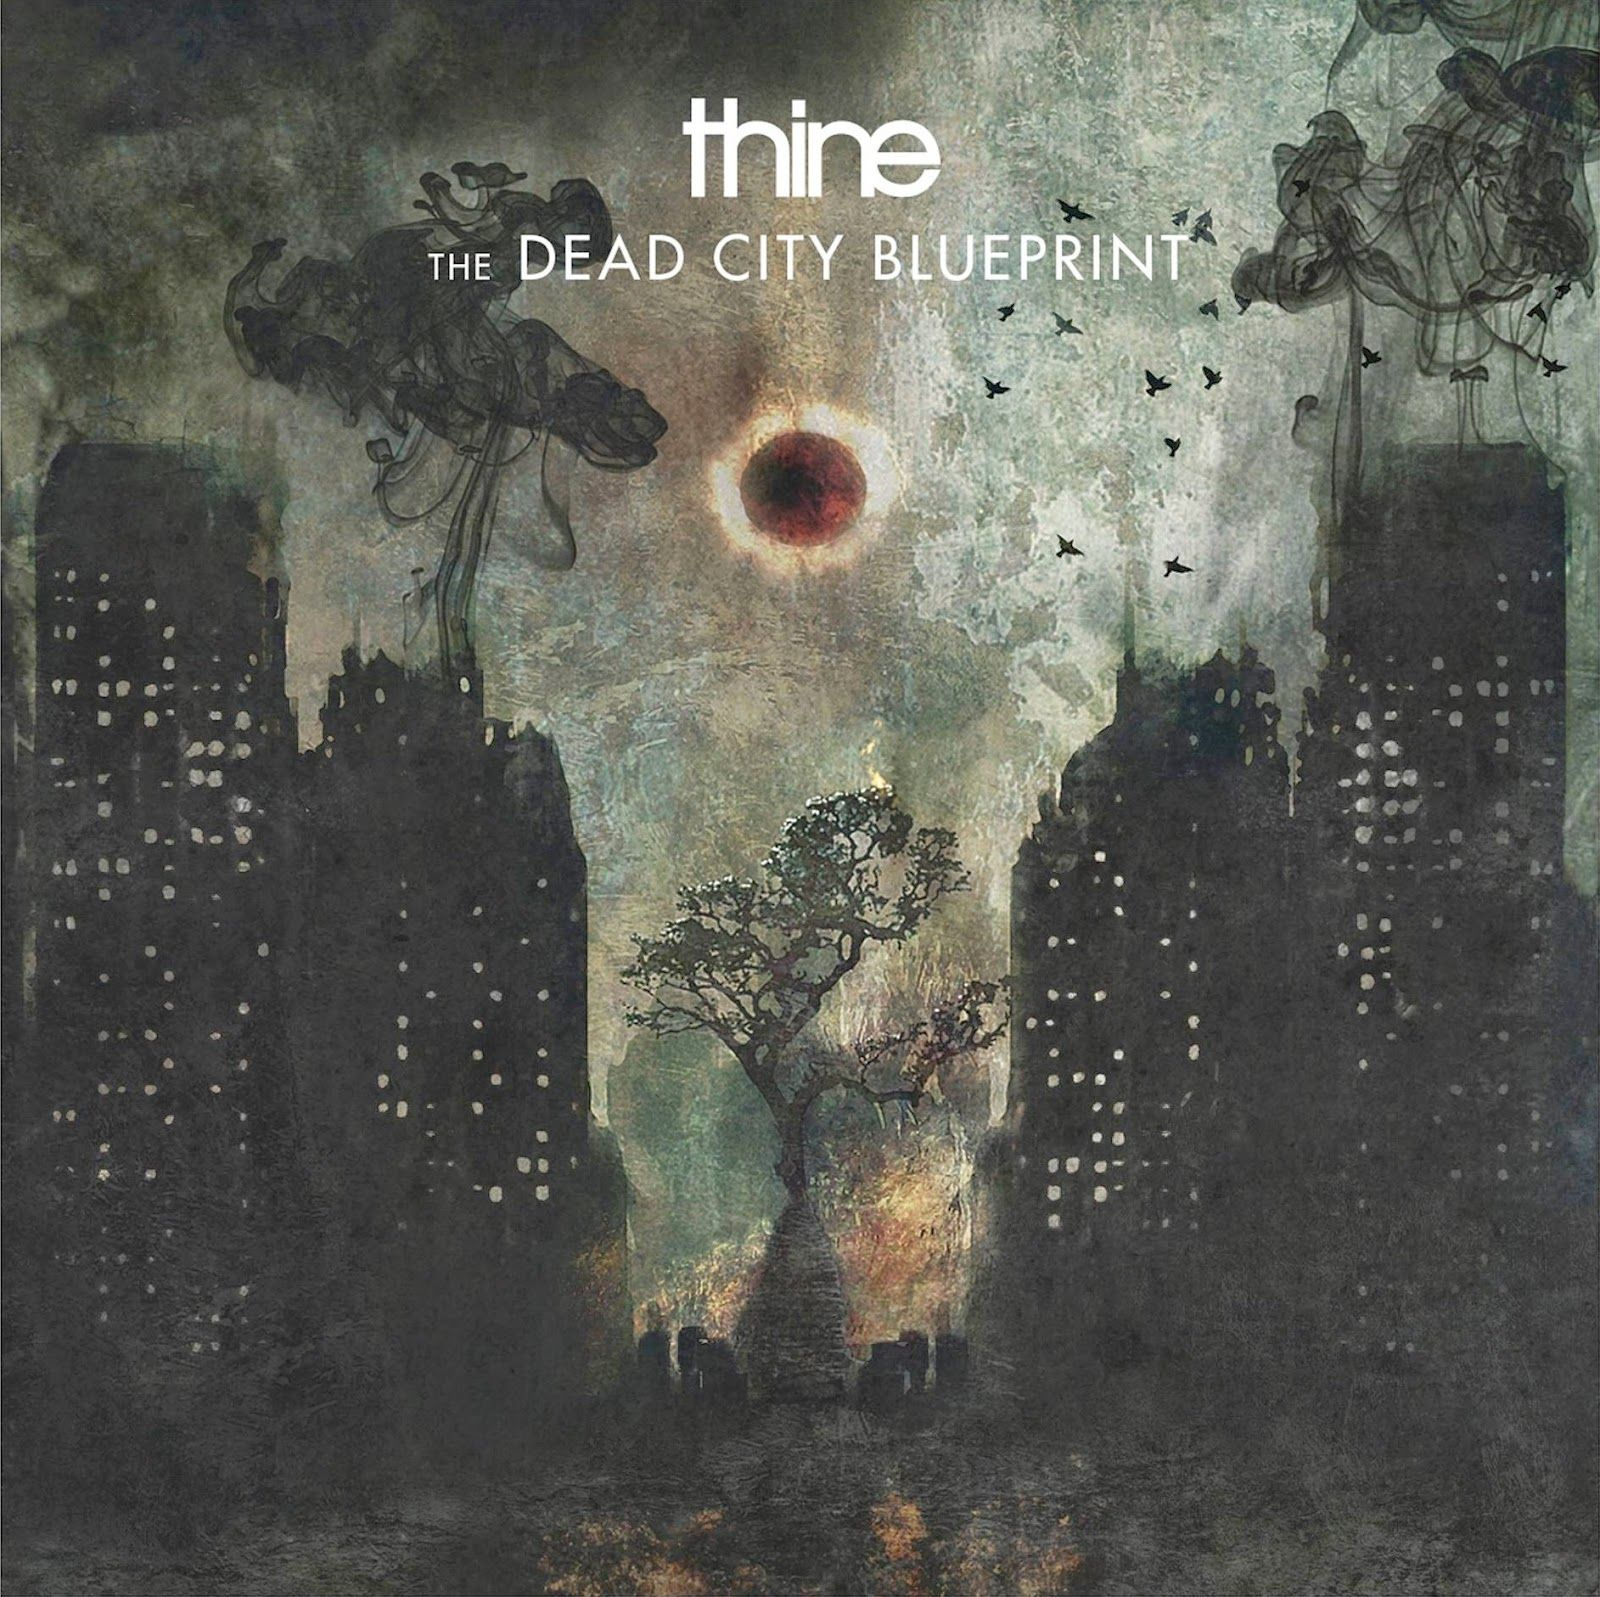 Thines new album the dead city blueprint premieres with the song thines new album the dead city blueprint premieres with the song out of your mind and into the void on soundcloud thines sound is a nice mix from malvernweather Gallery